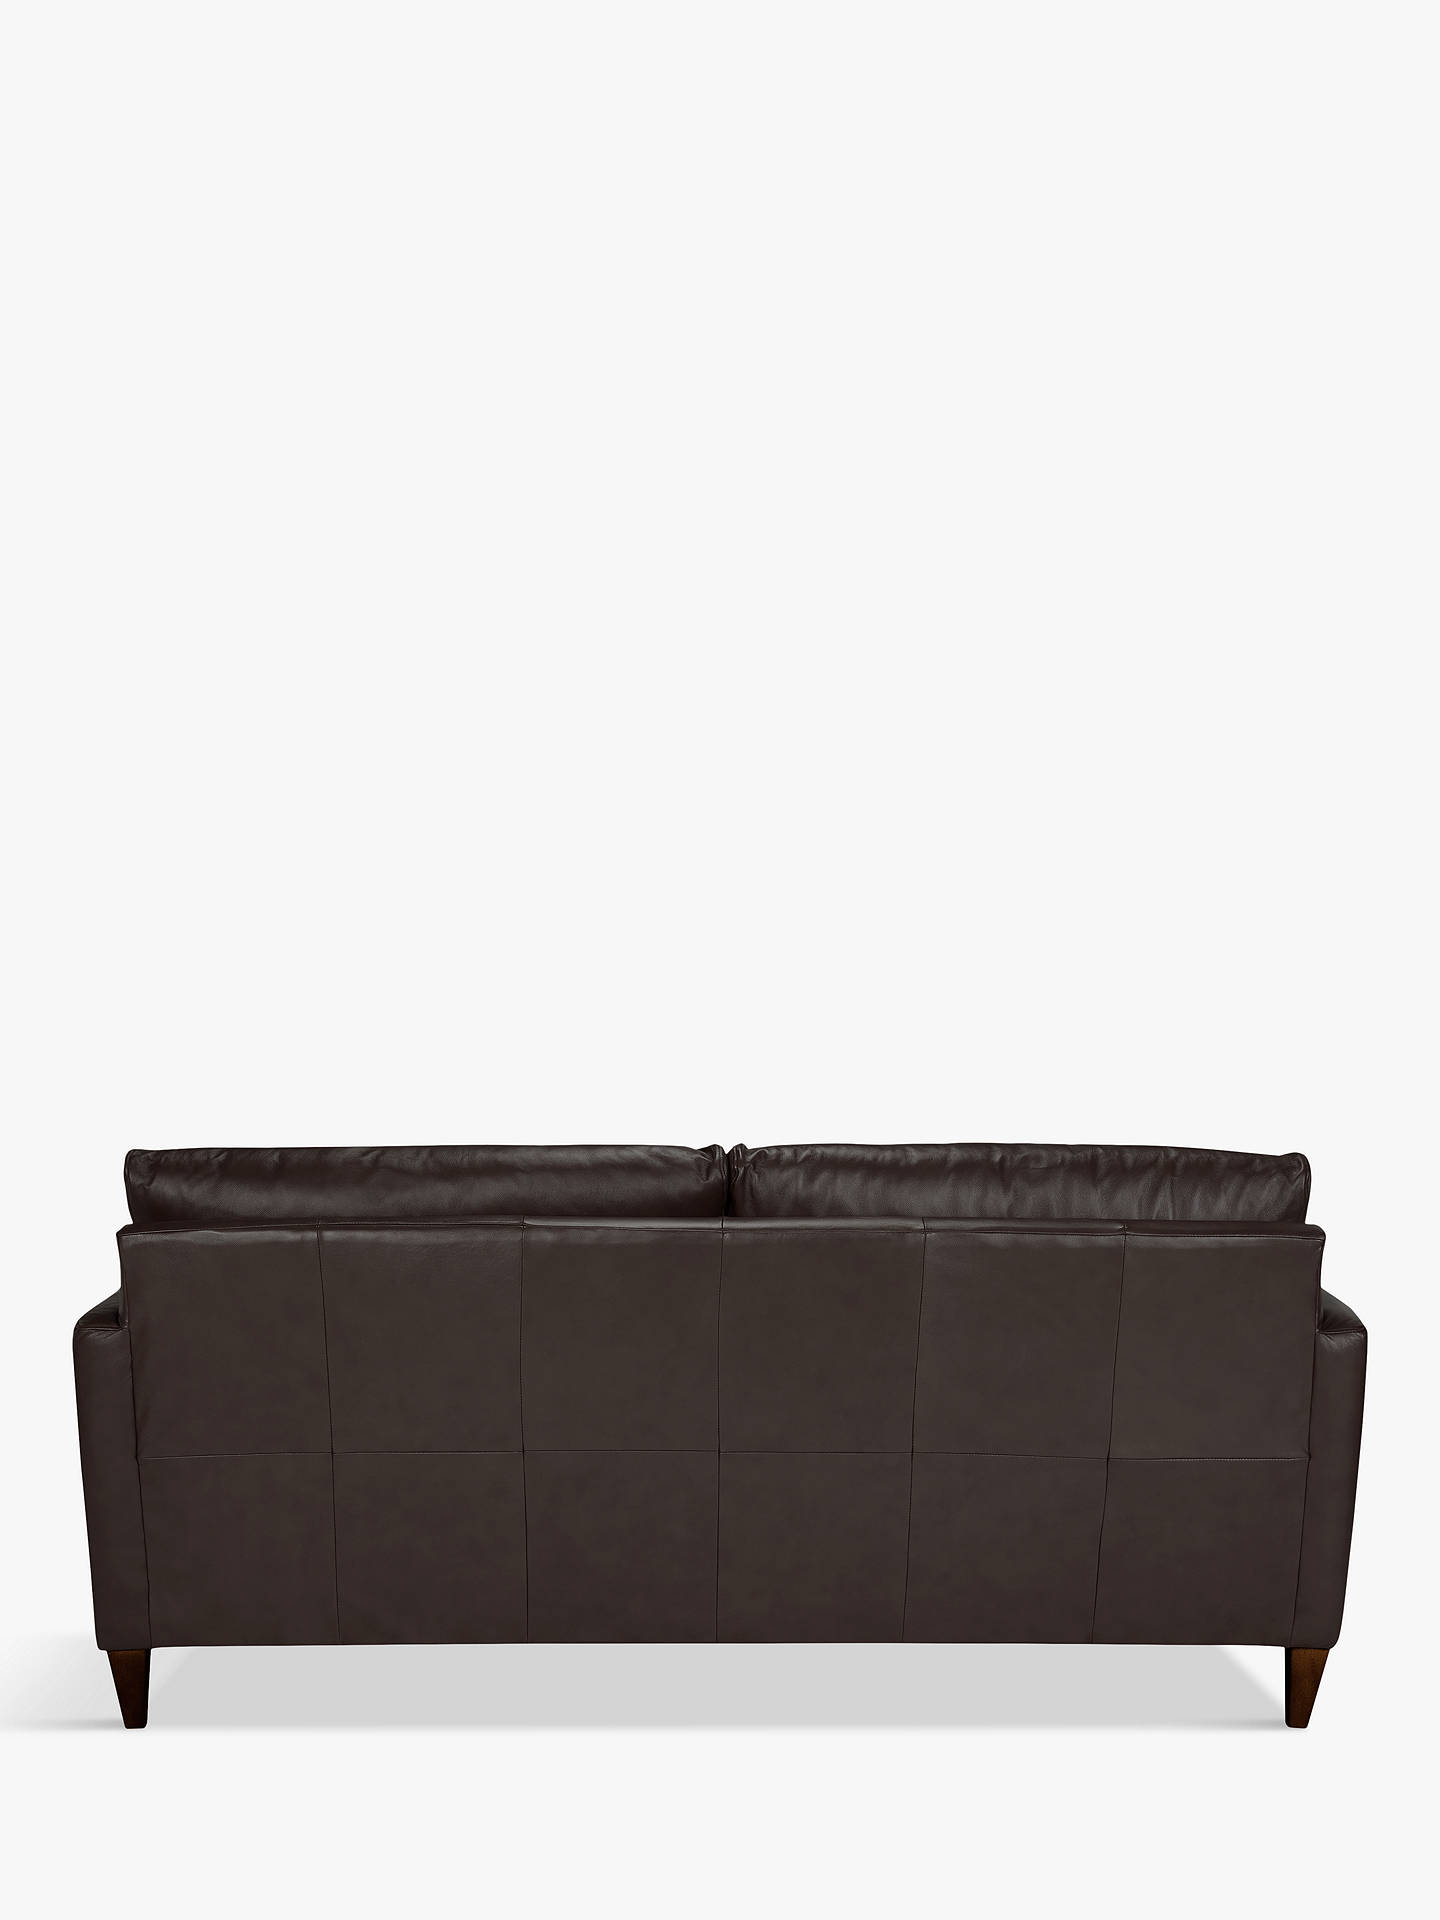 Buy John Lewis & Partners Bailey Leather LHF Chaise End Sofa, Dark Leg, Demetra Charcoal Online at johnlewis.com